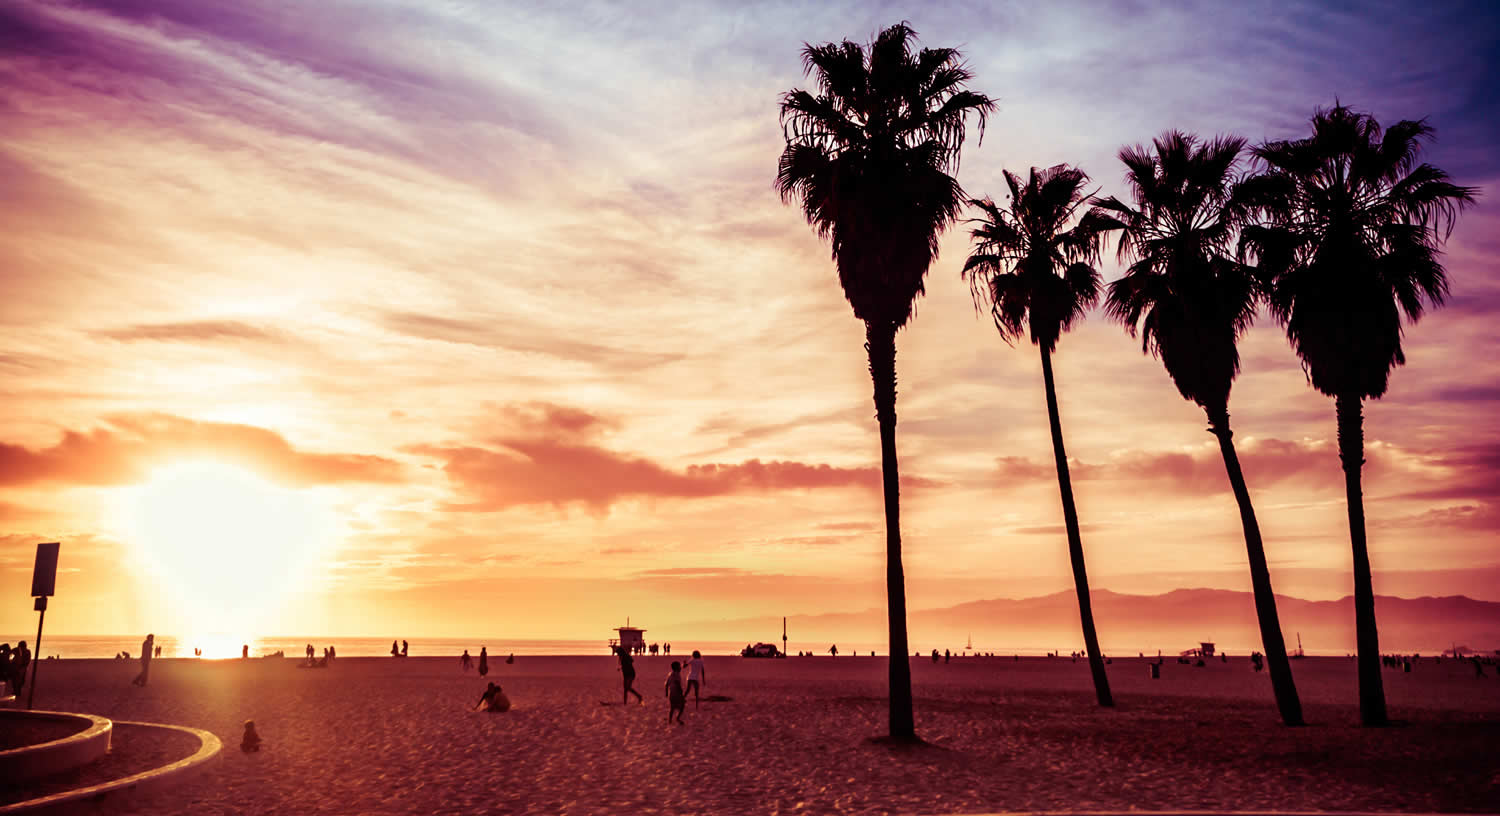 Venice Beach California Wallpaper 1500x816